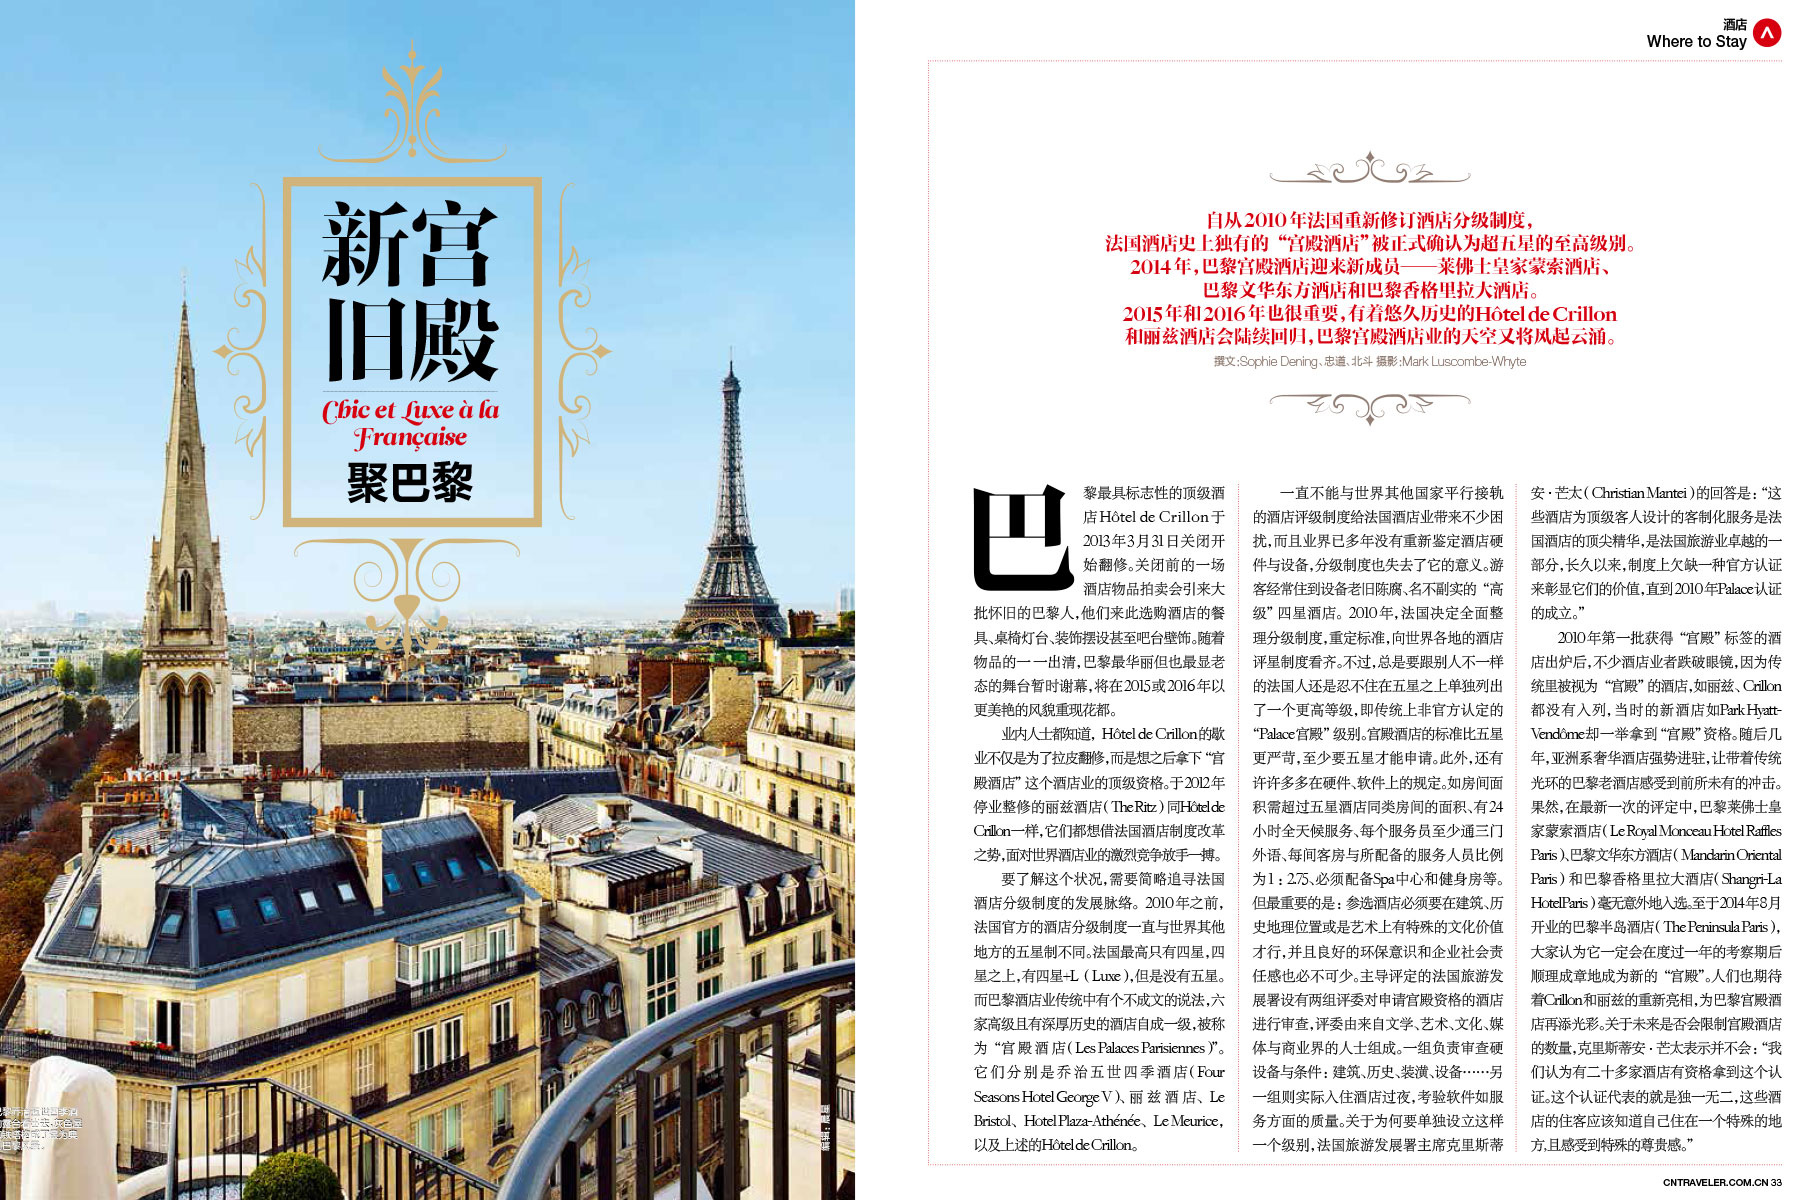 Paris Hotels, Conde Nast Traveller, China.